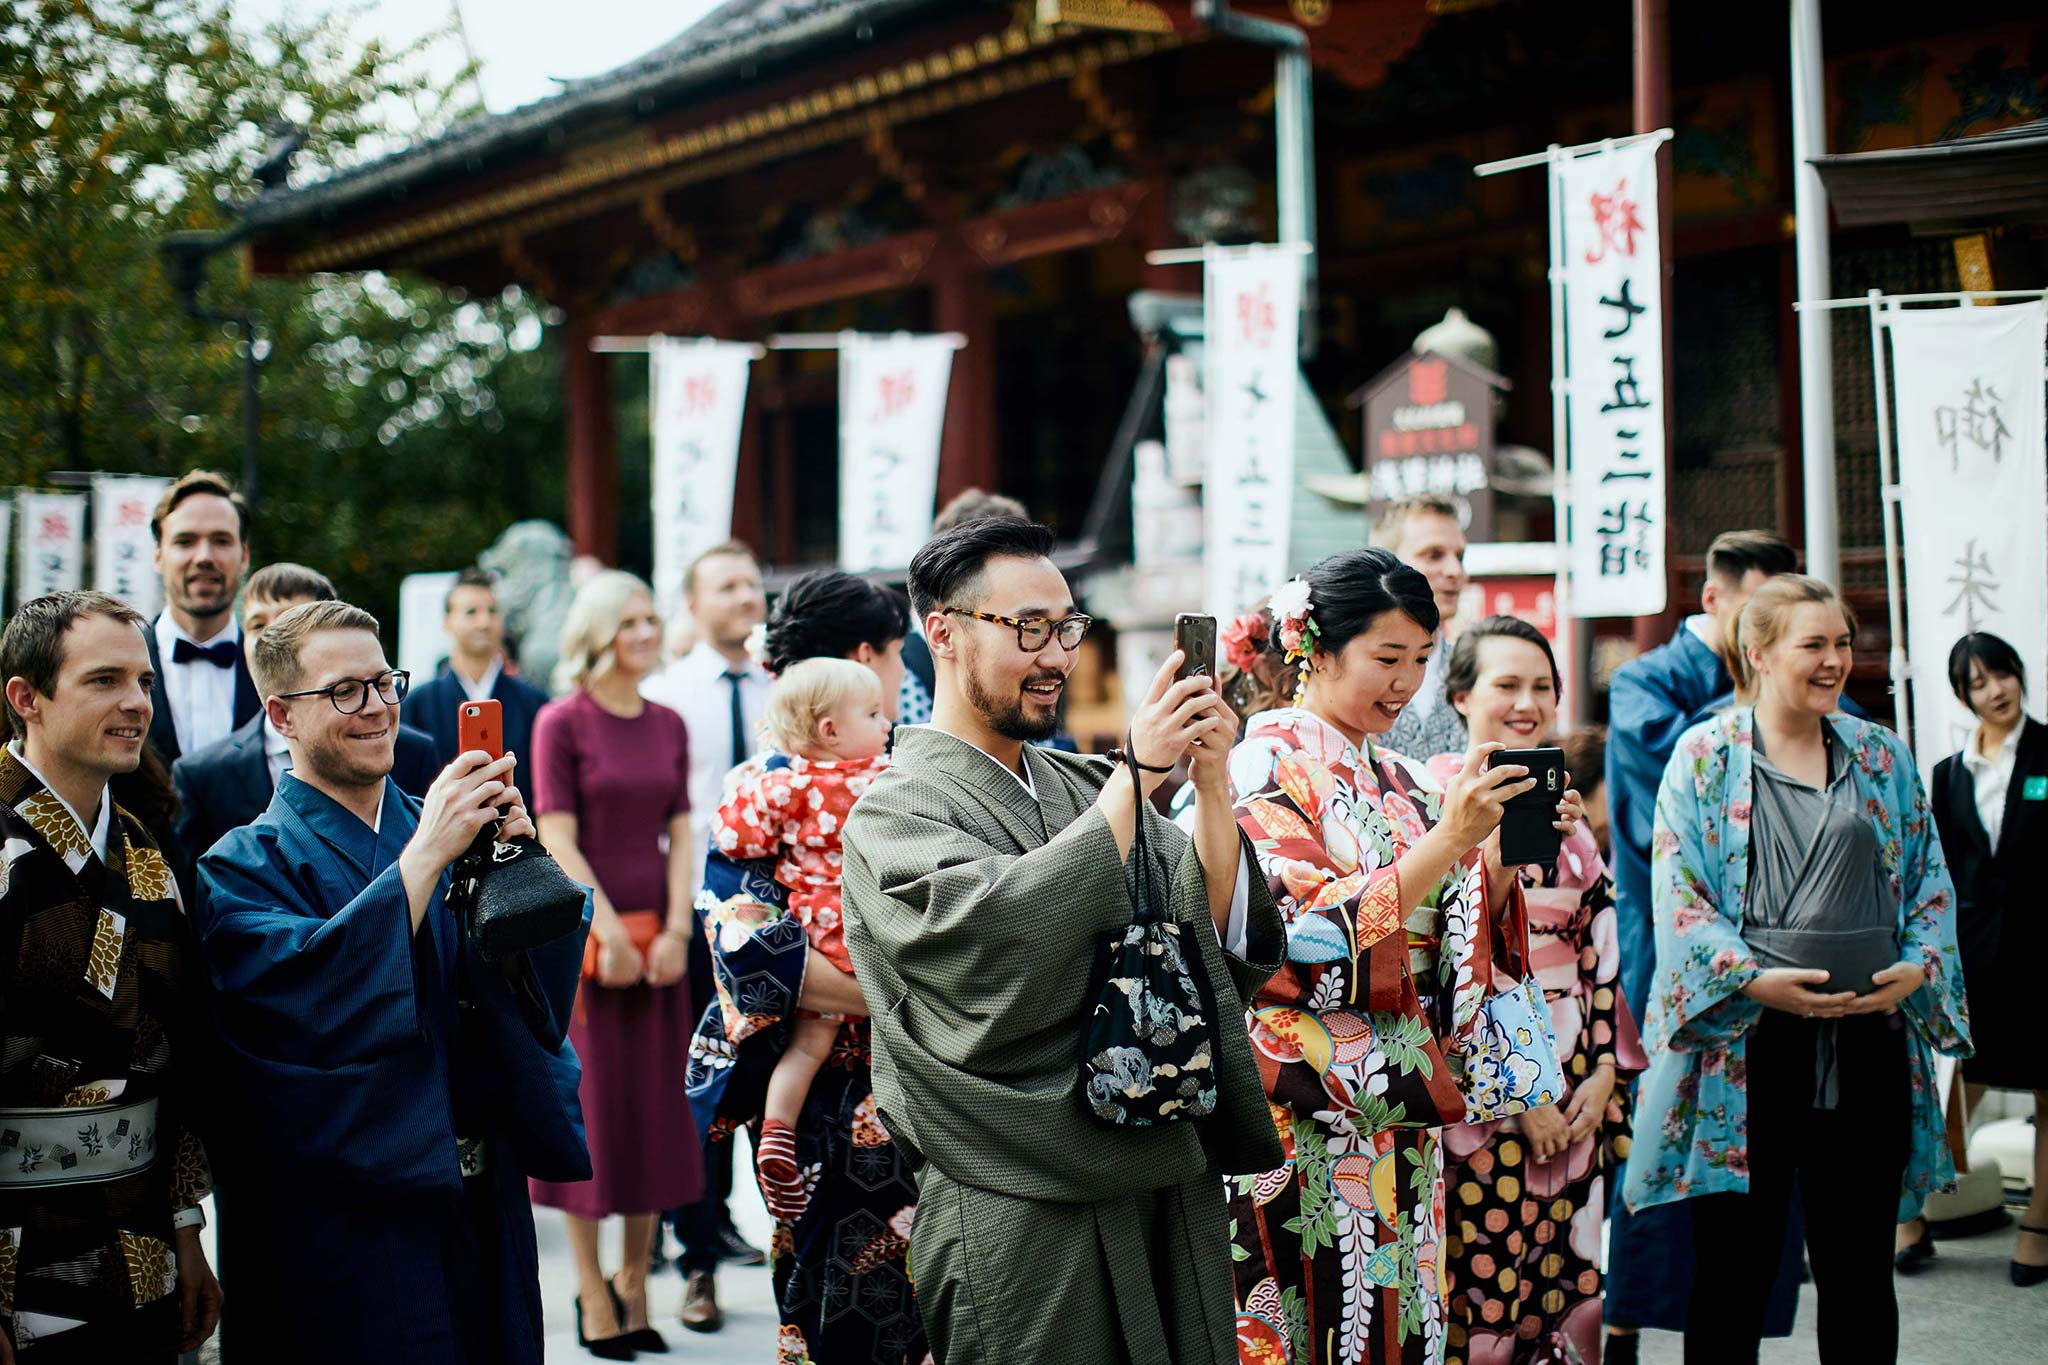 tokyo asakusa shrine traditional wedding guests taking photos